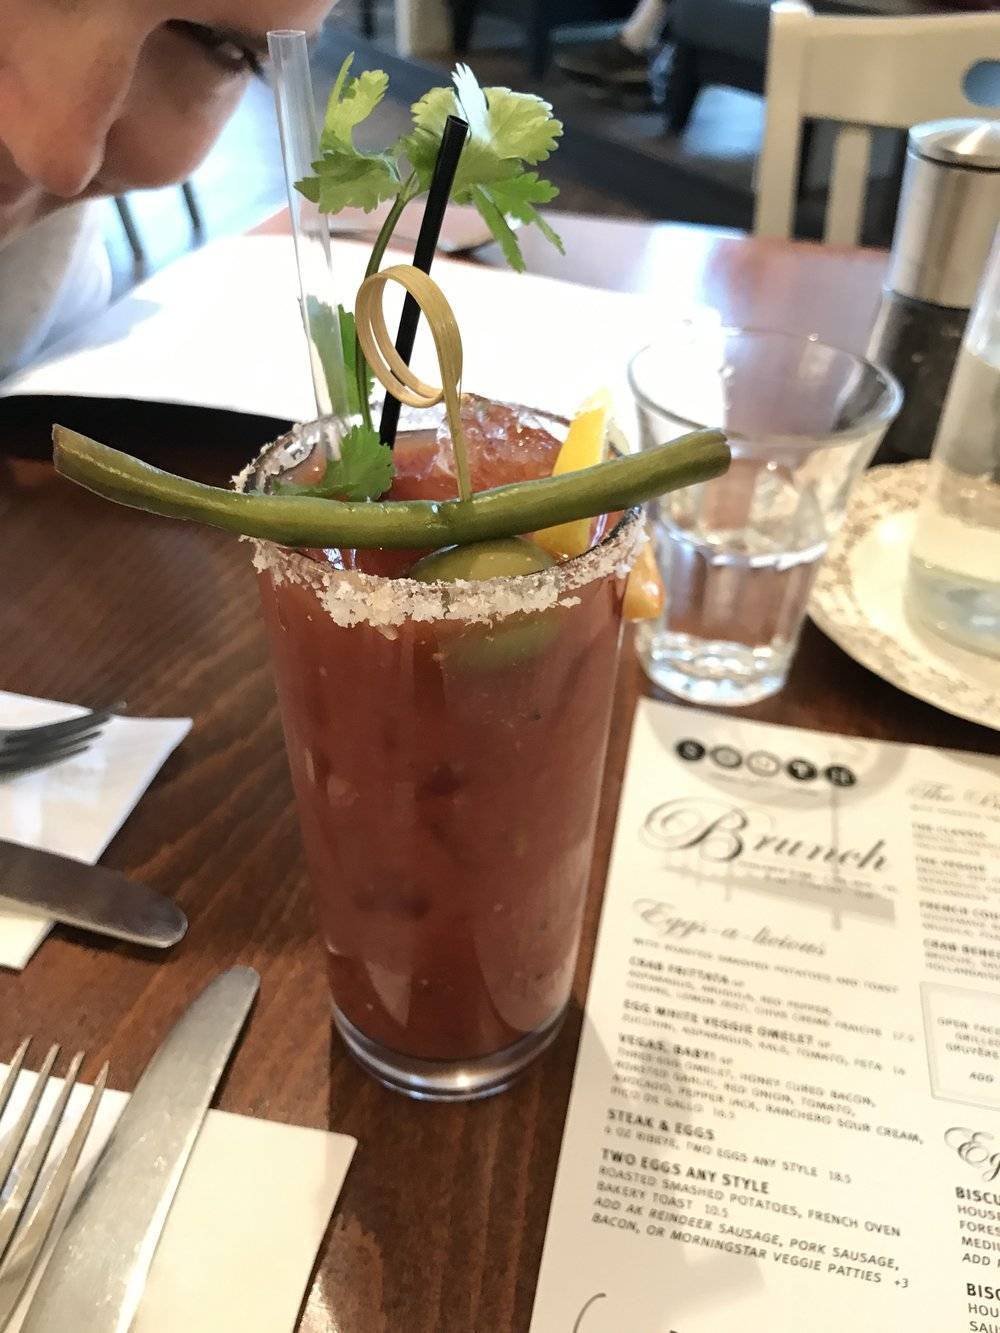 Grace creepin' in the background--such a good bloody mary.